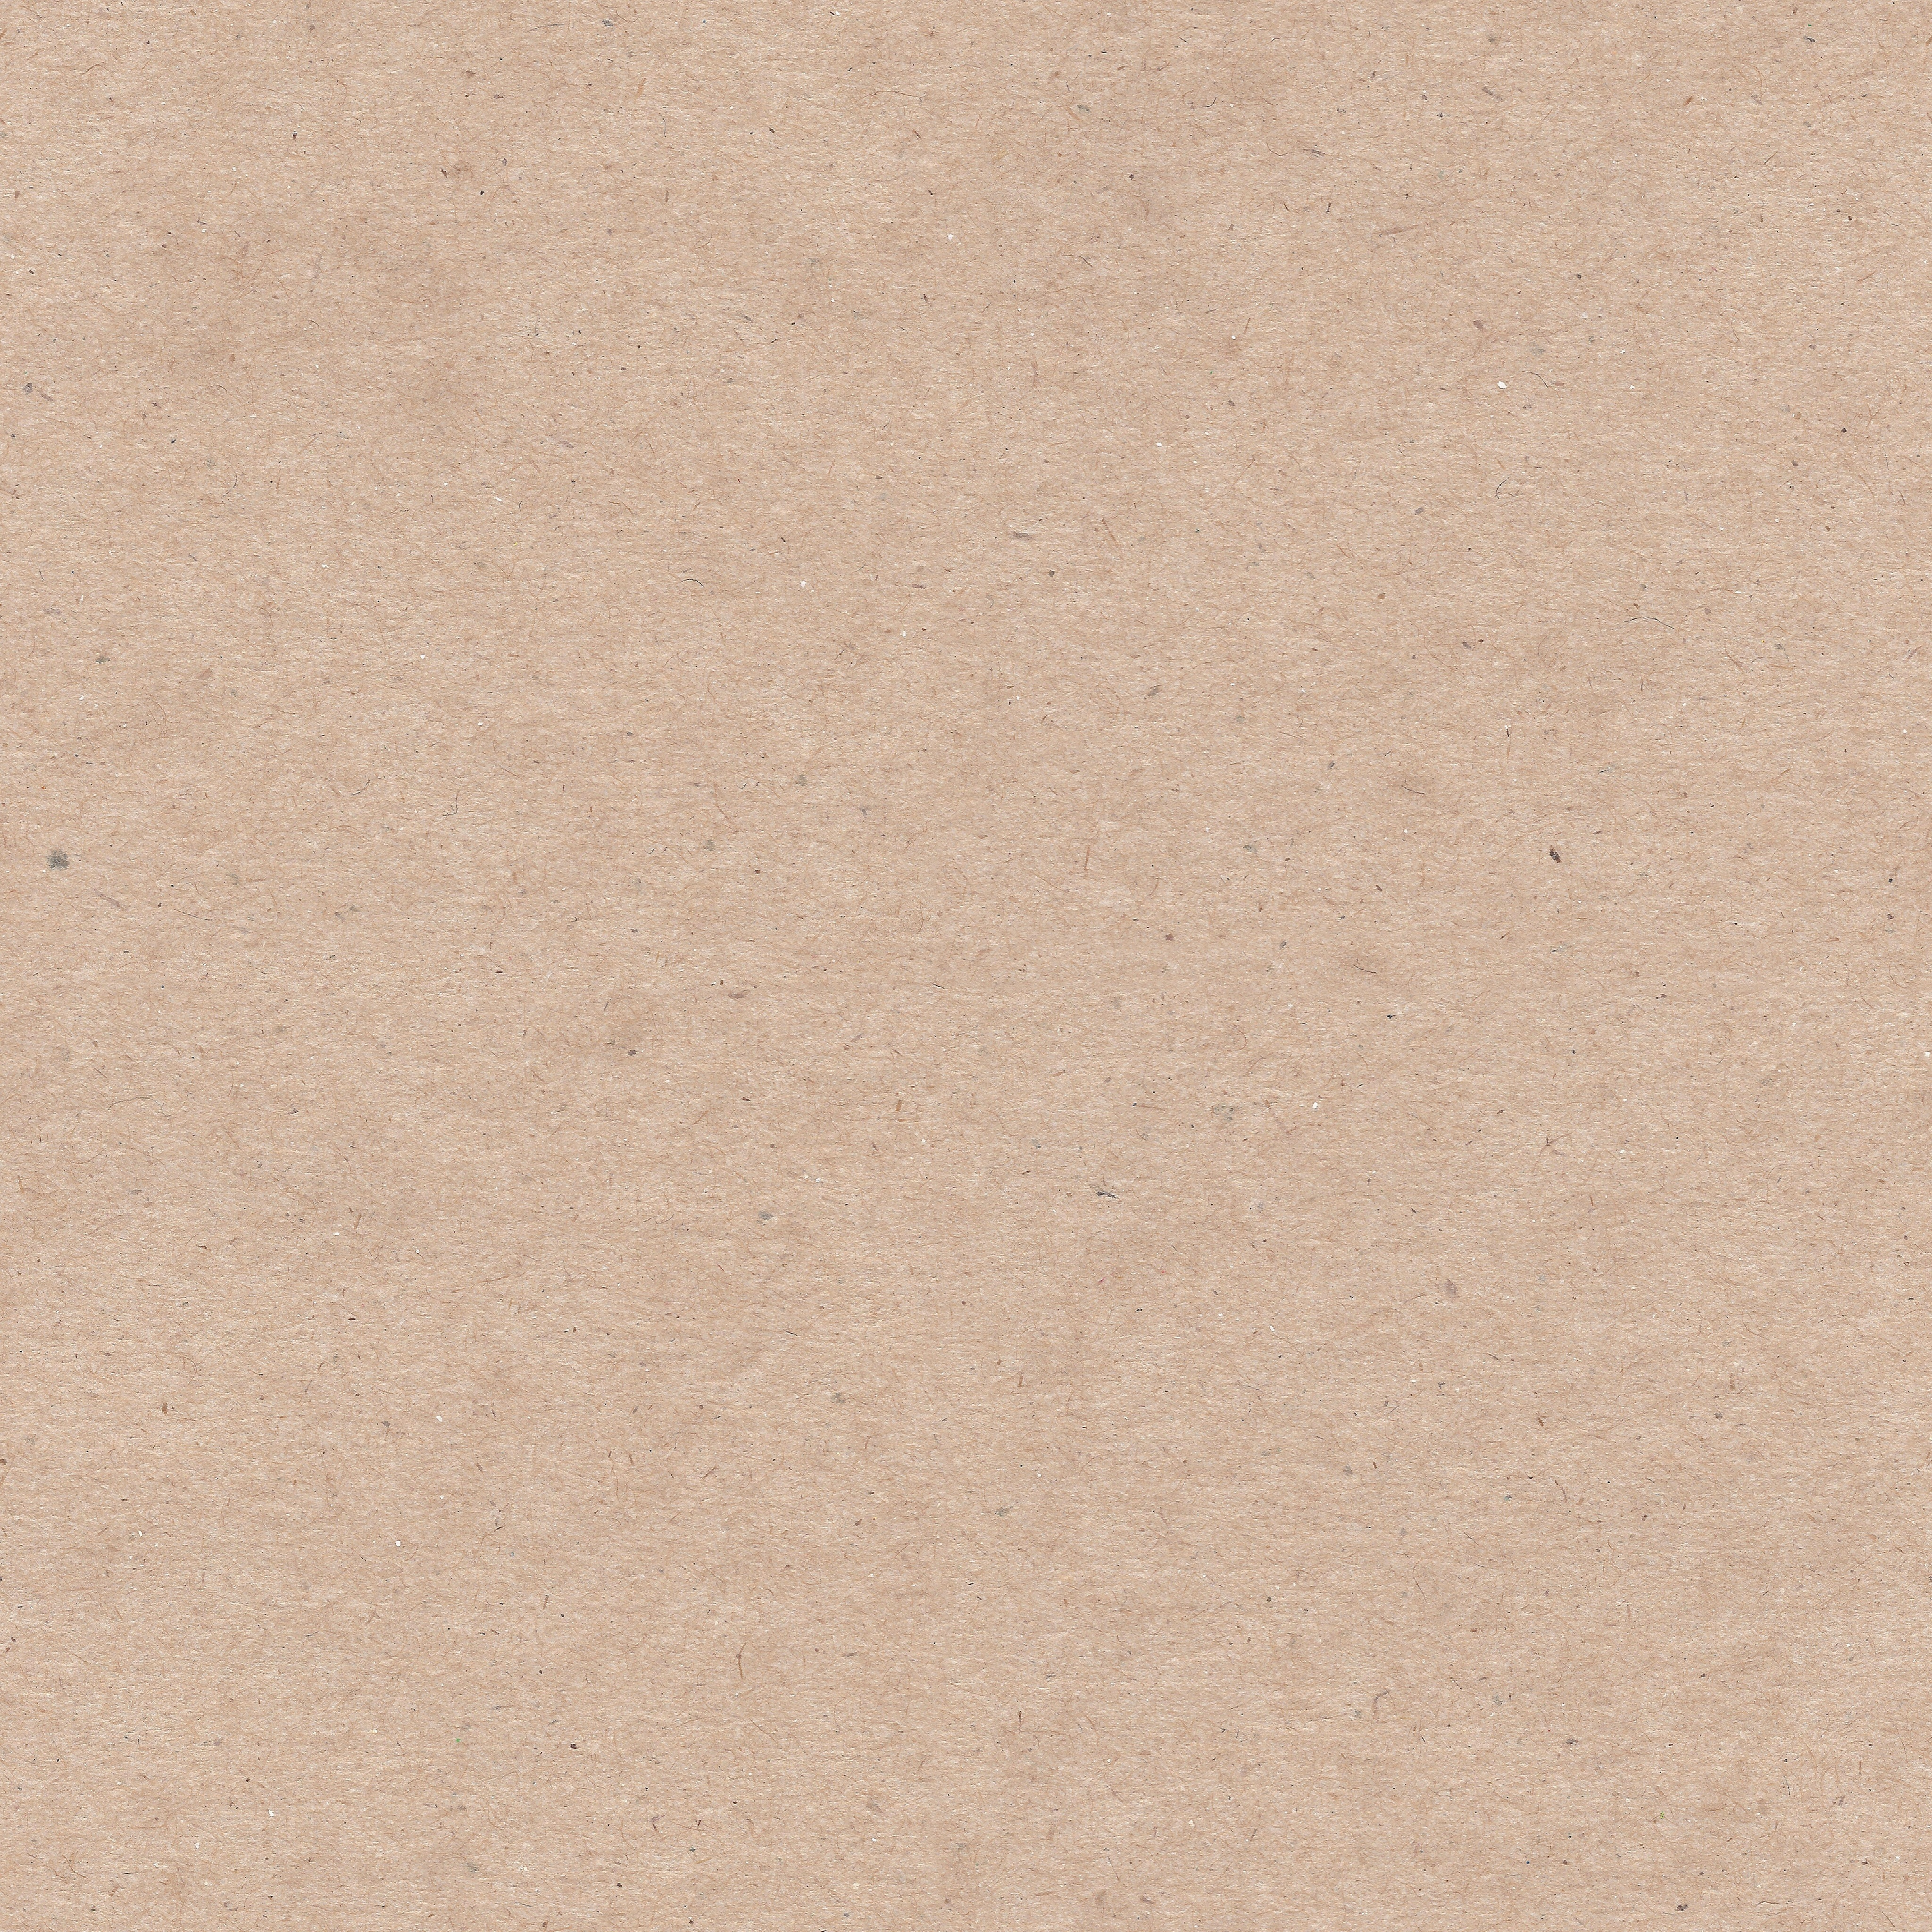 Free Stock Photo Of Brown Cardboard File